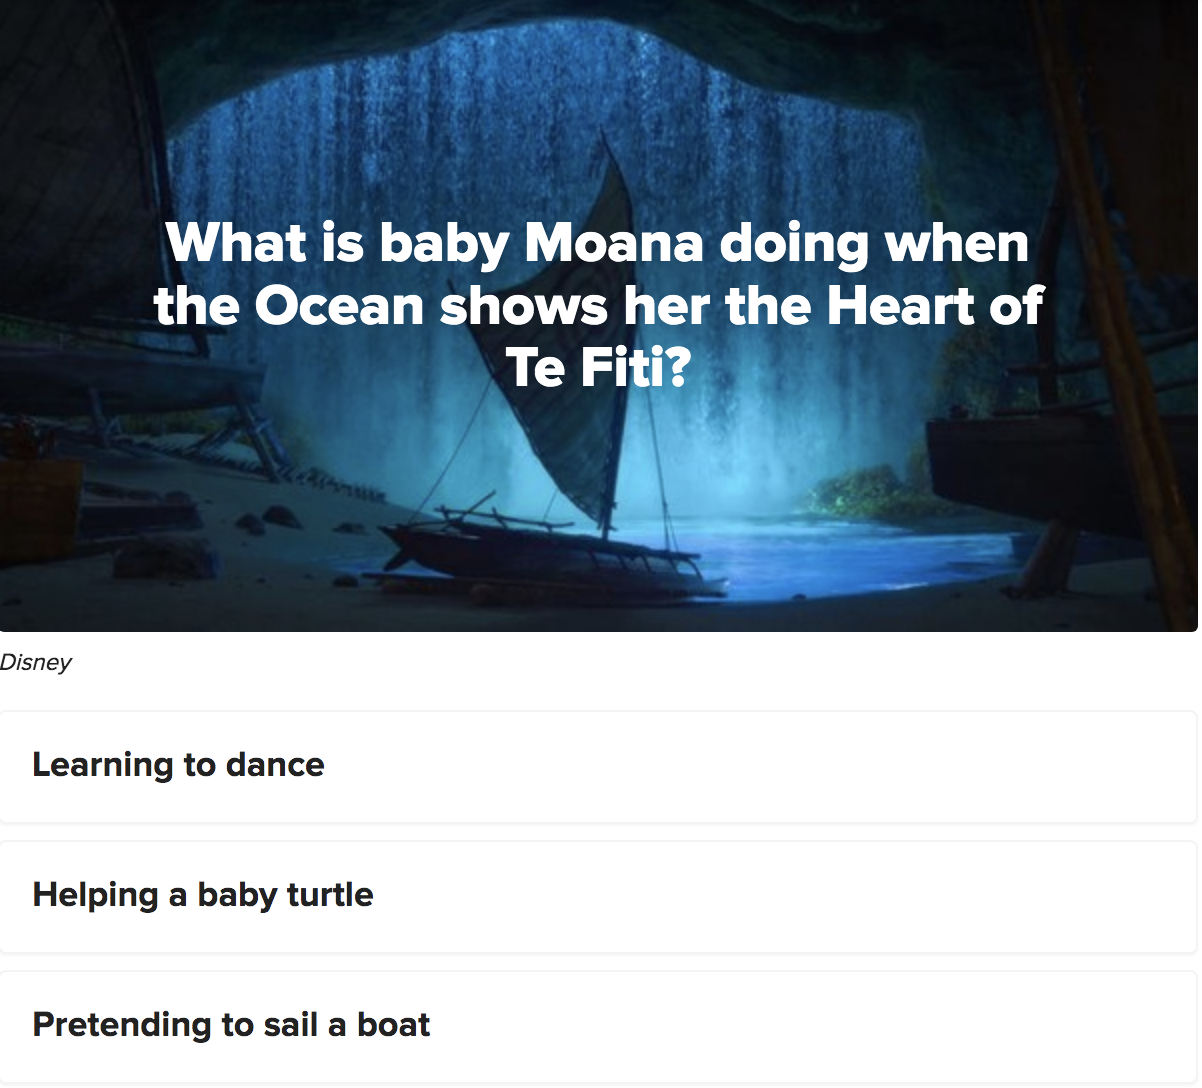 A question asking what baby Moana was doing when the ocean shows her the heart of Te Fiti